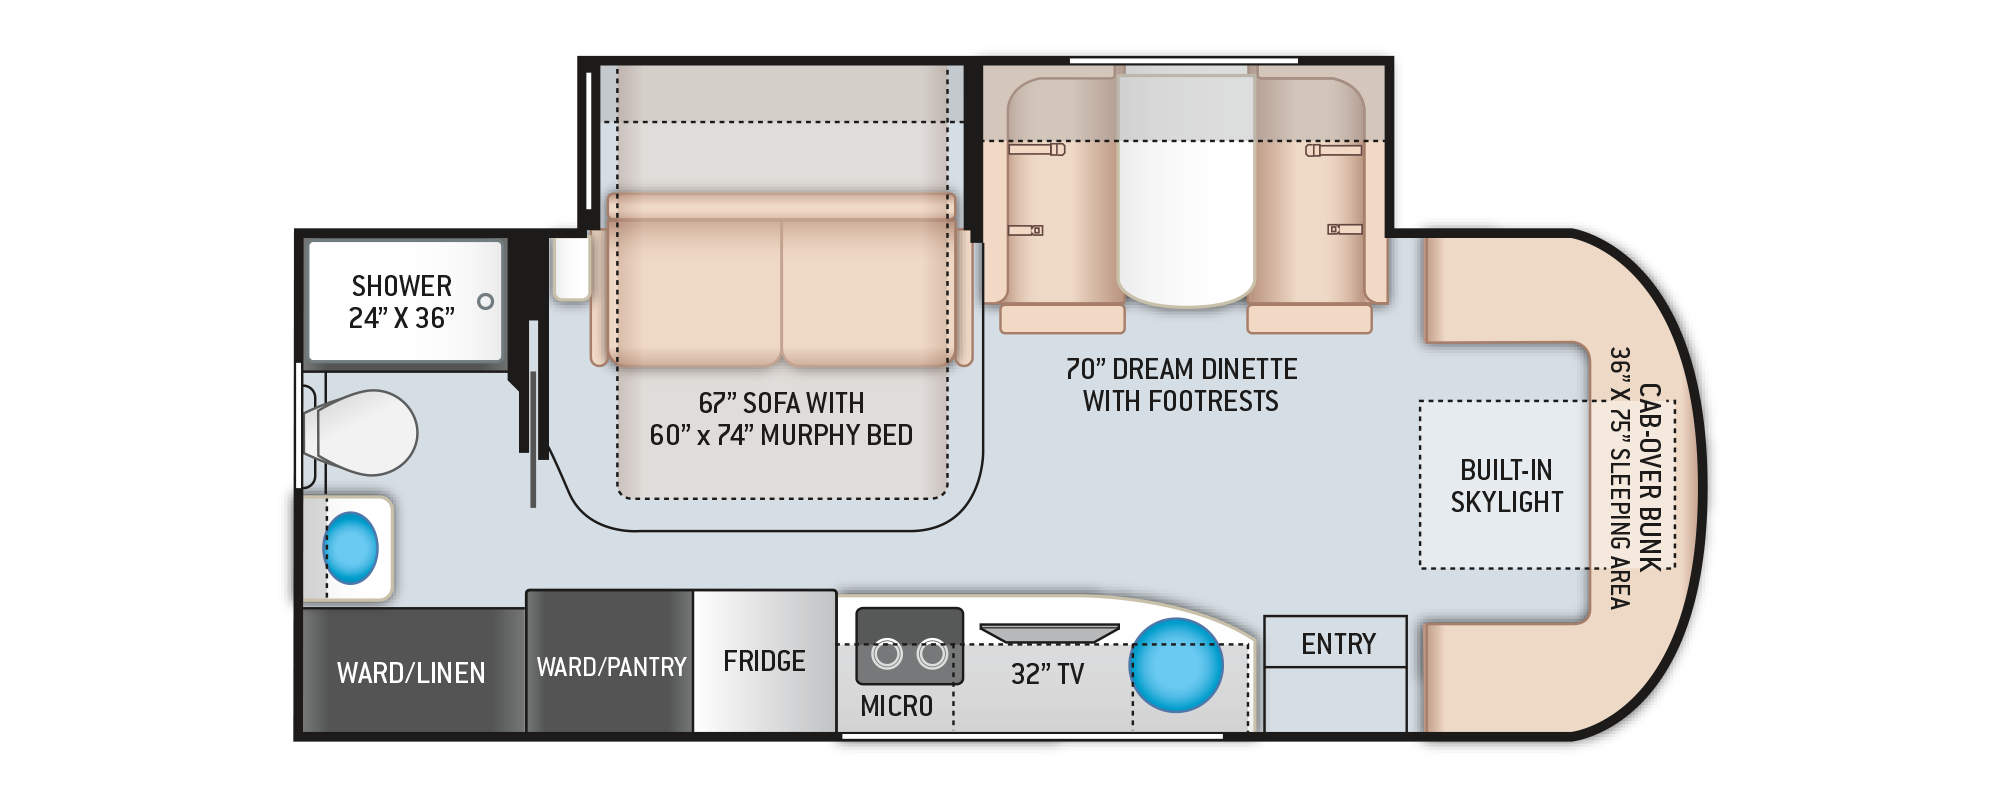 Delano Mercedes Sprinter RV 24FB Floor Plan